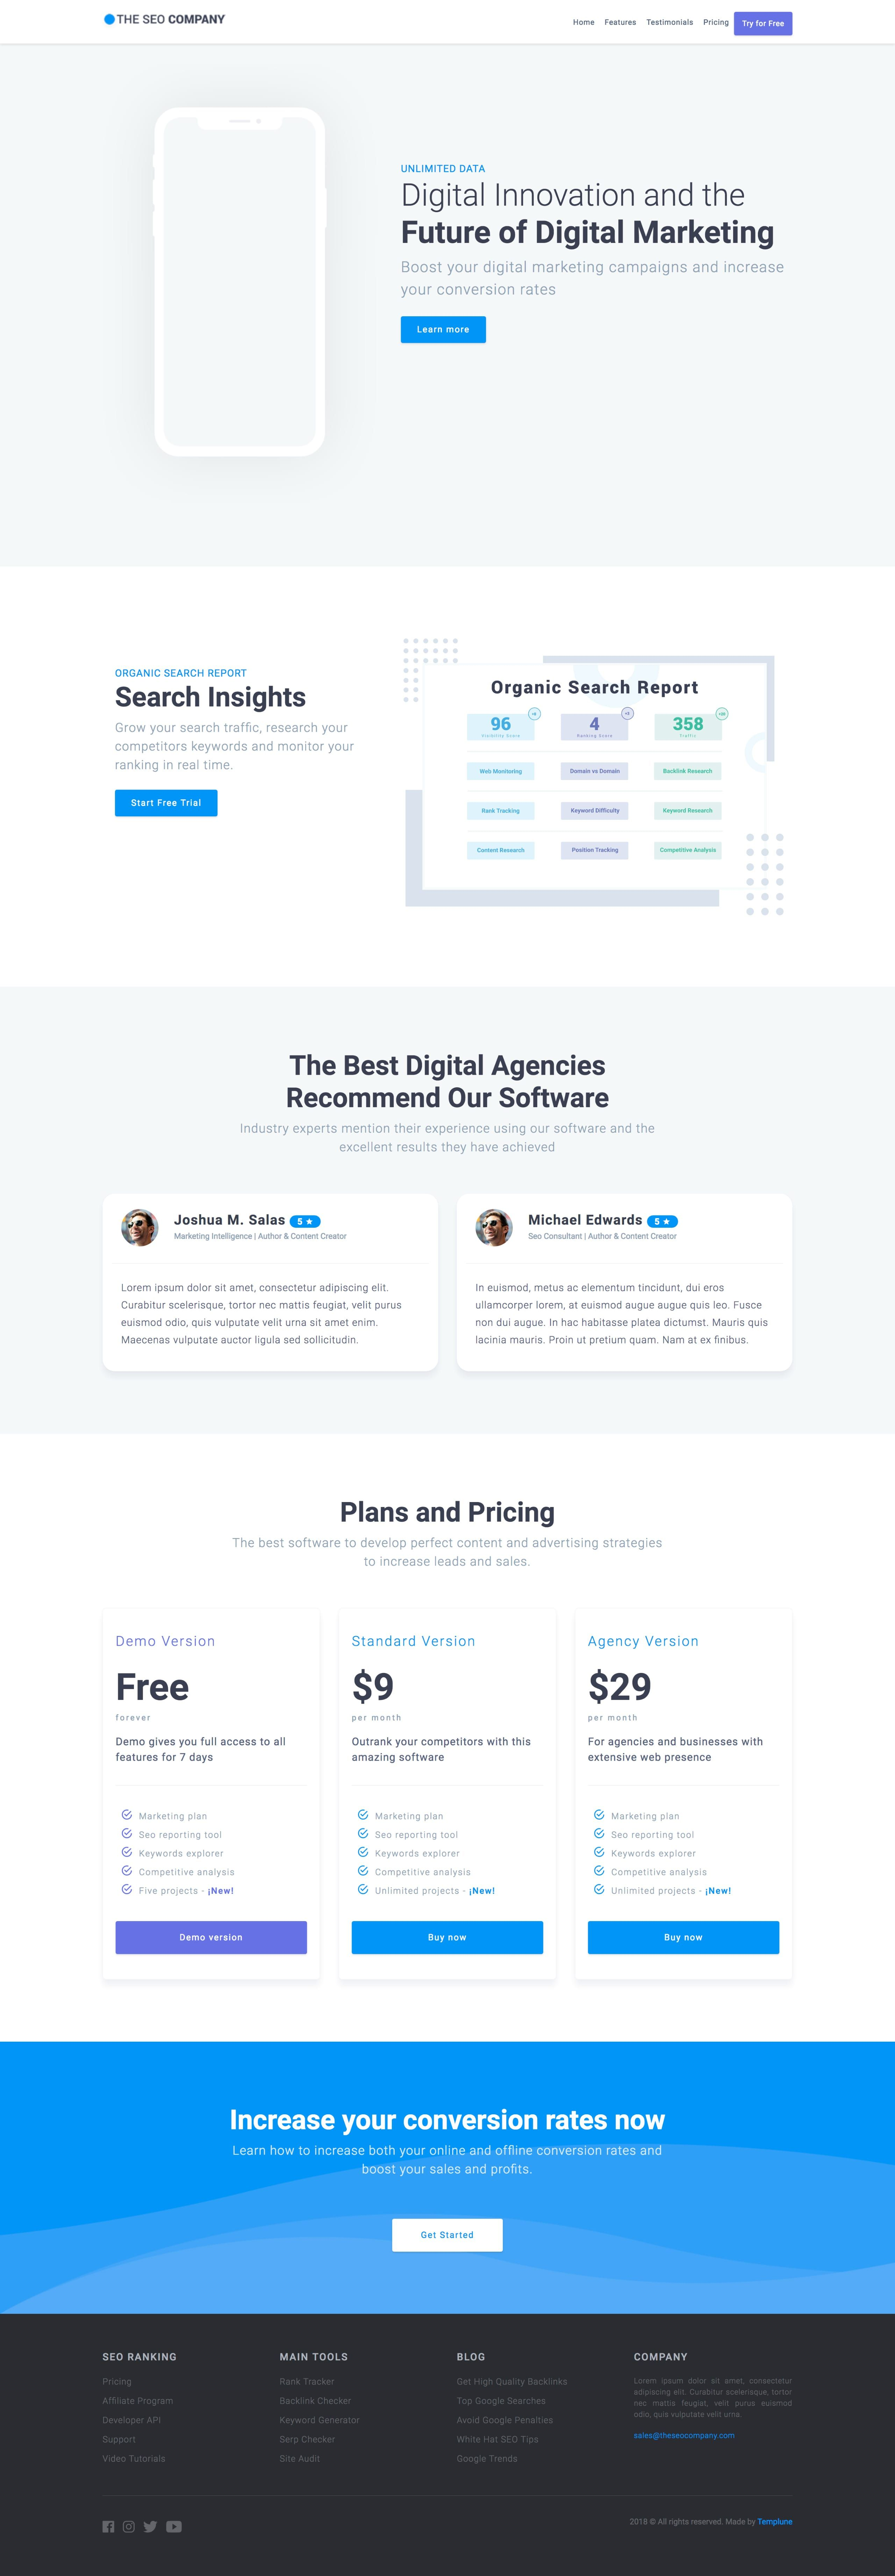 The Seo Company Is A Free One Page Html Template For A Digital Agency Wanting A Clean Online Presence Features I Psd Template Free Psd Templates Seo Company